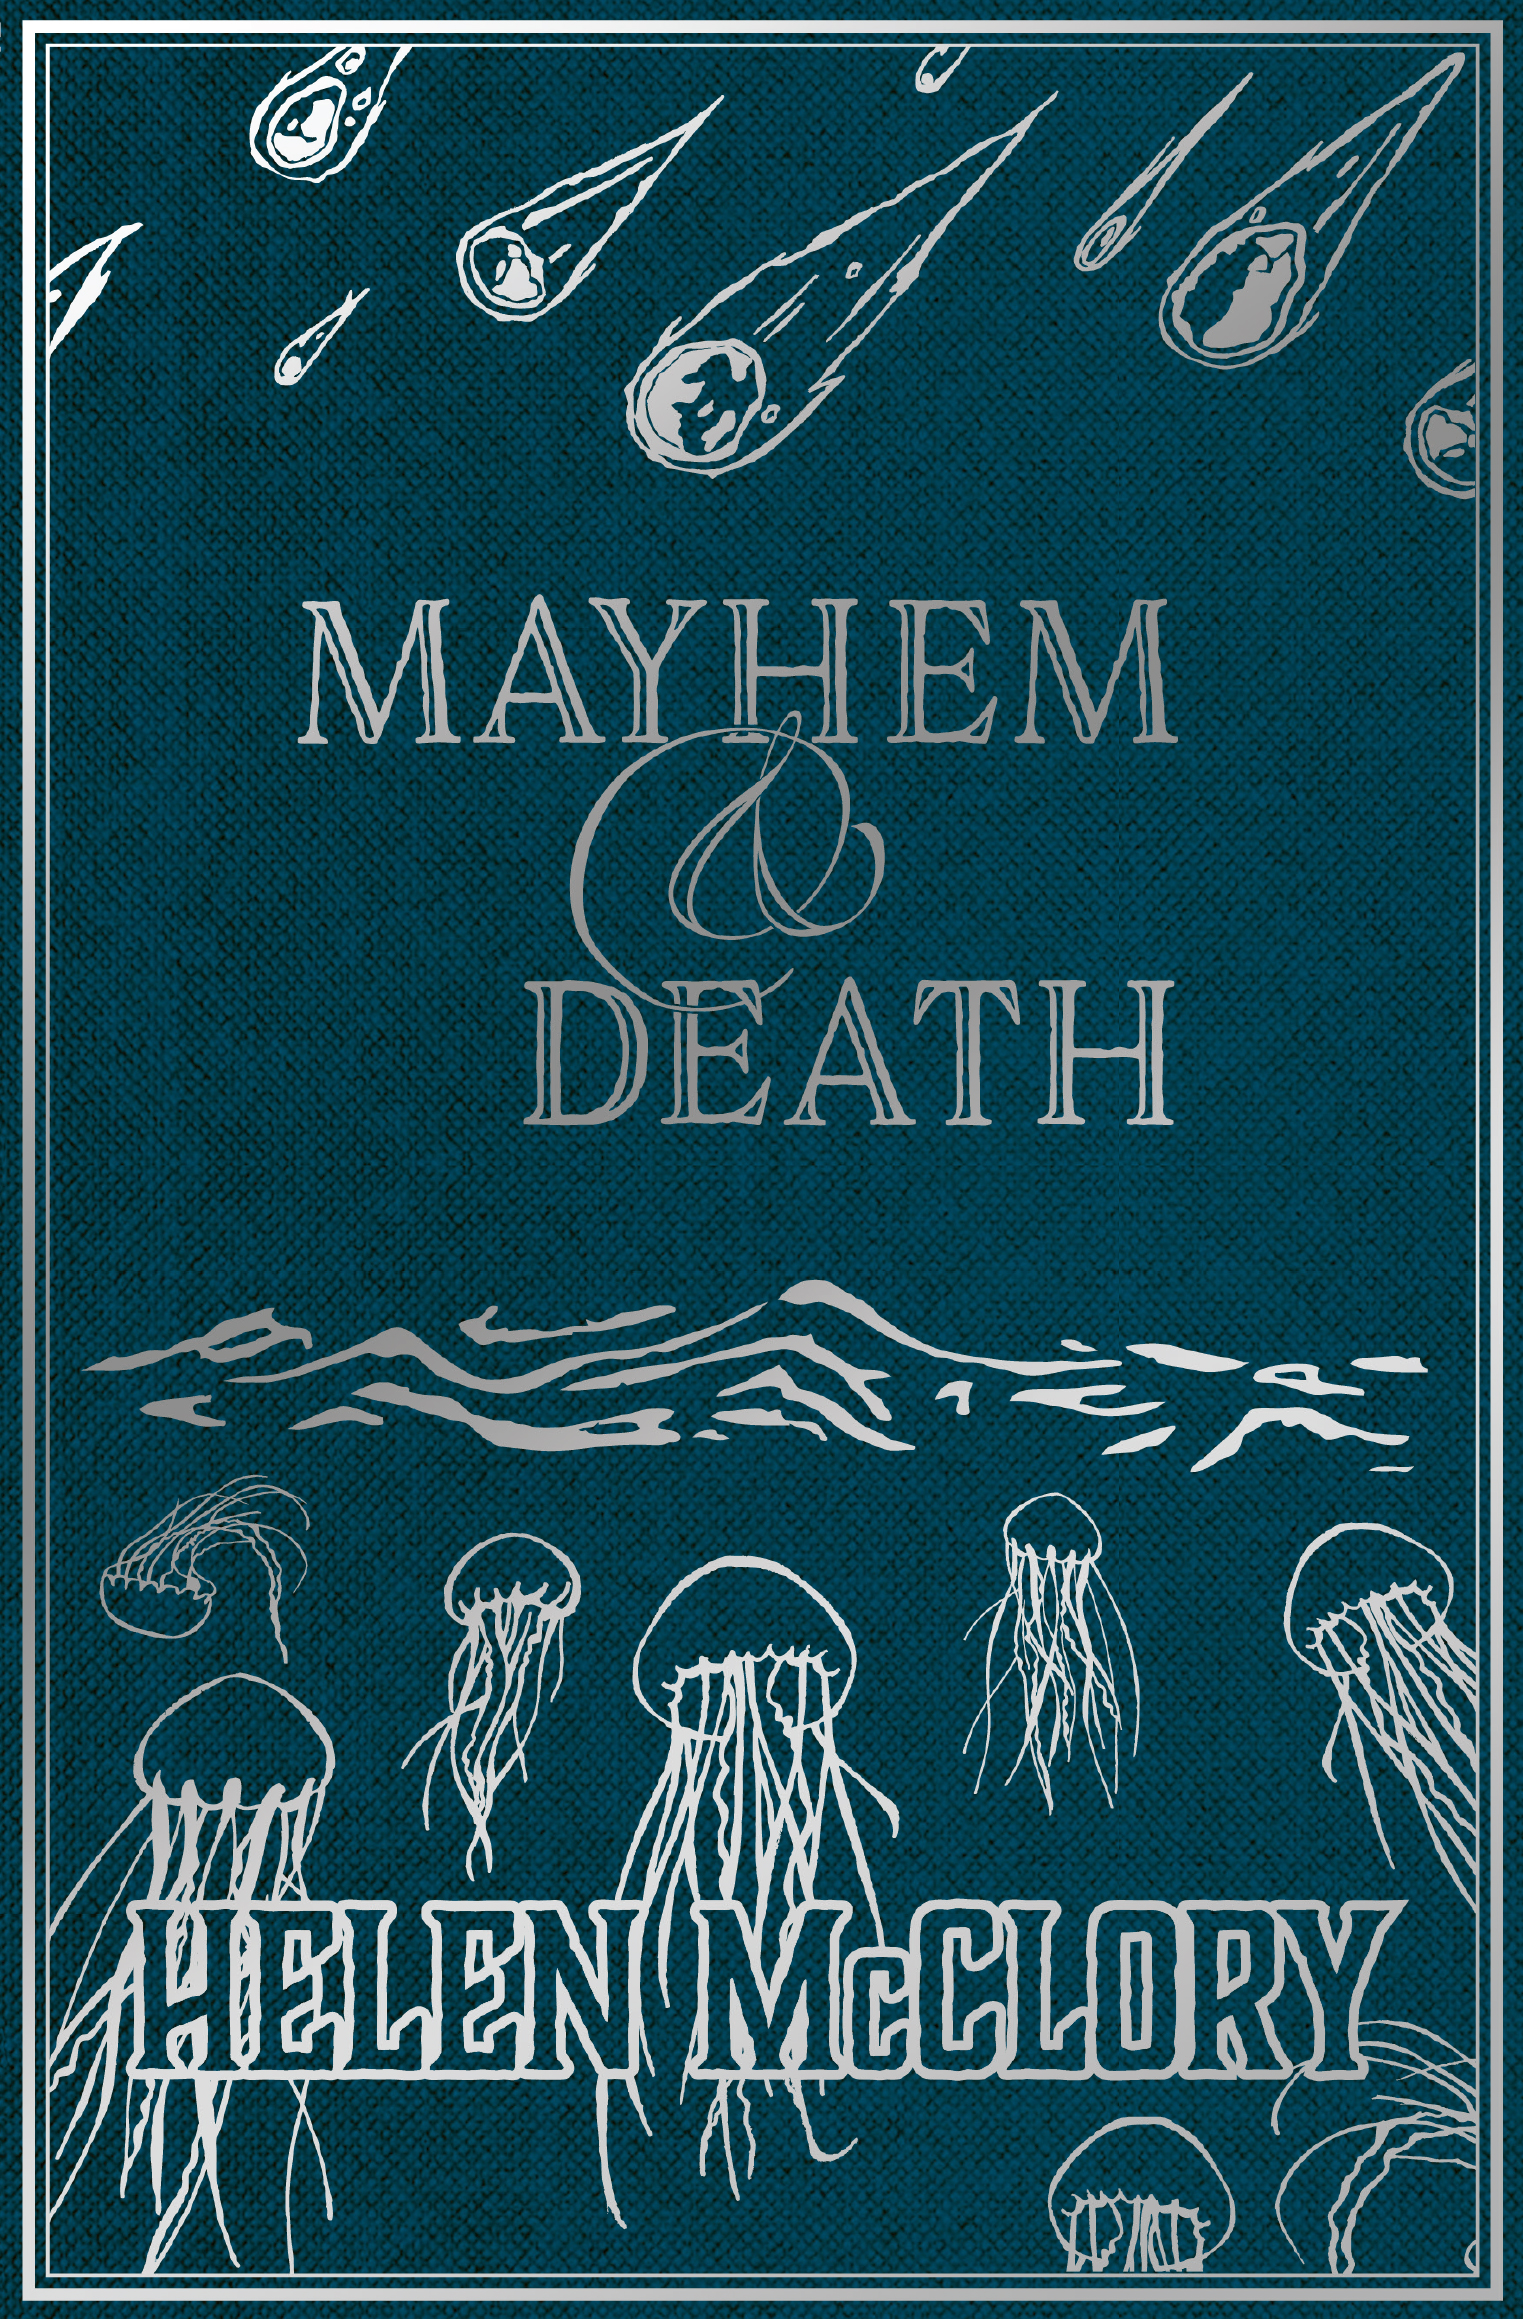 MAYHEM & DEATH  In the anticipated follow-up collection to 2015's award-winning On the Edges of Vision, Helen McClory returns delving deeper into descriptively mythical yet recognisable stories woven from dark and light, human fear and fortune.   Swimming and suffering. Spikes loom ever-threatening. A weight against the throat. Sea where the dead lie pressed into a layer of silt. A silent documentary through a terrible place. Mary Somerville, future Queen of Science. A coven of two. A polar companion.   Mayhem & Death is the matured, darker companion to On the Edges of Vision and shows McClory's ever expanding ability to envelop and entrance her readers with lyrical language of lore, stunning settings and curious characters. It includes woodcut-style illustrations to accompany each short story.